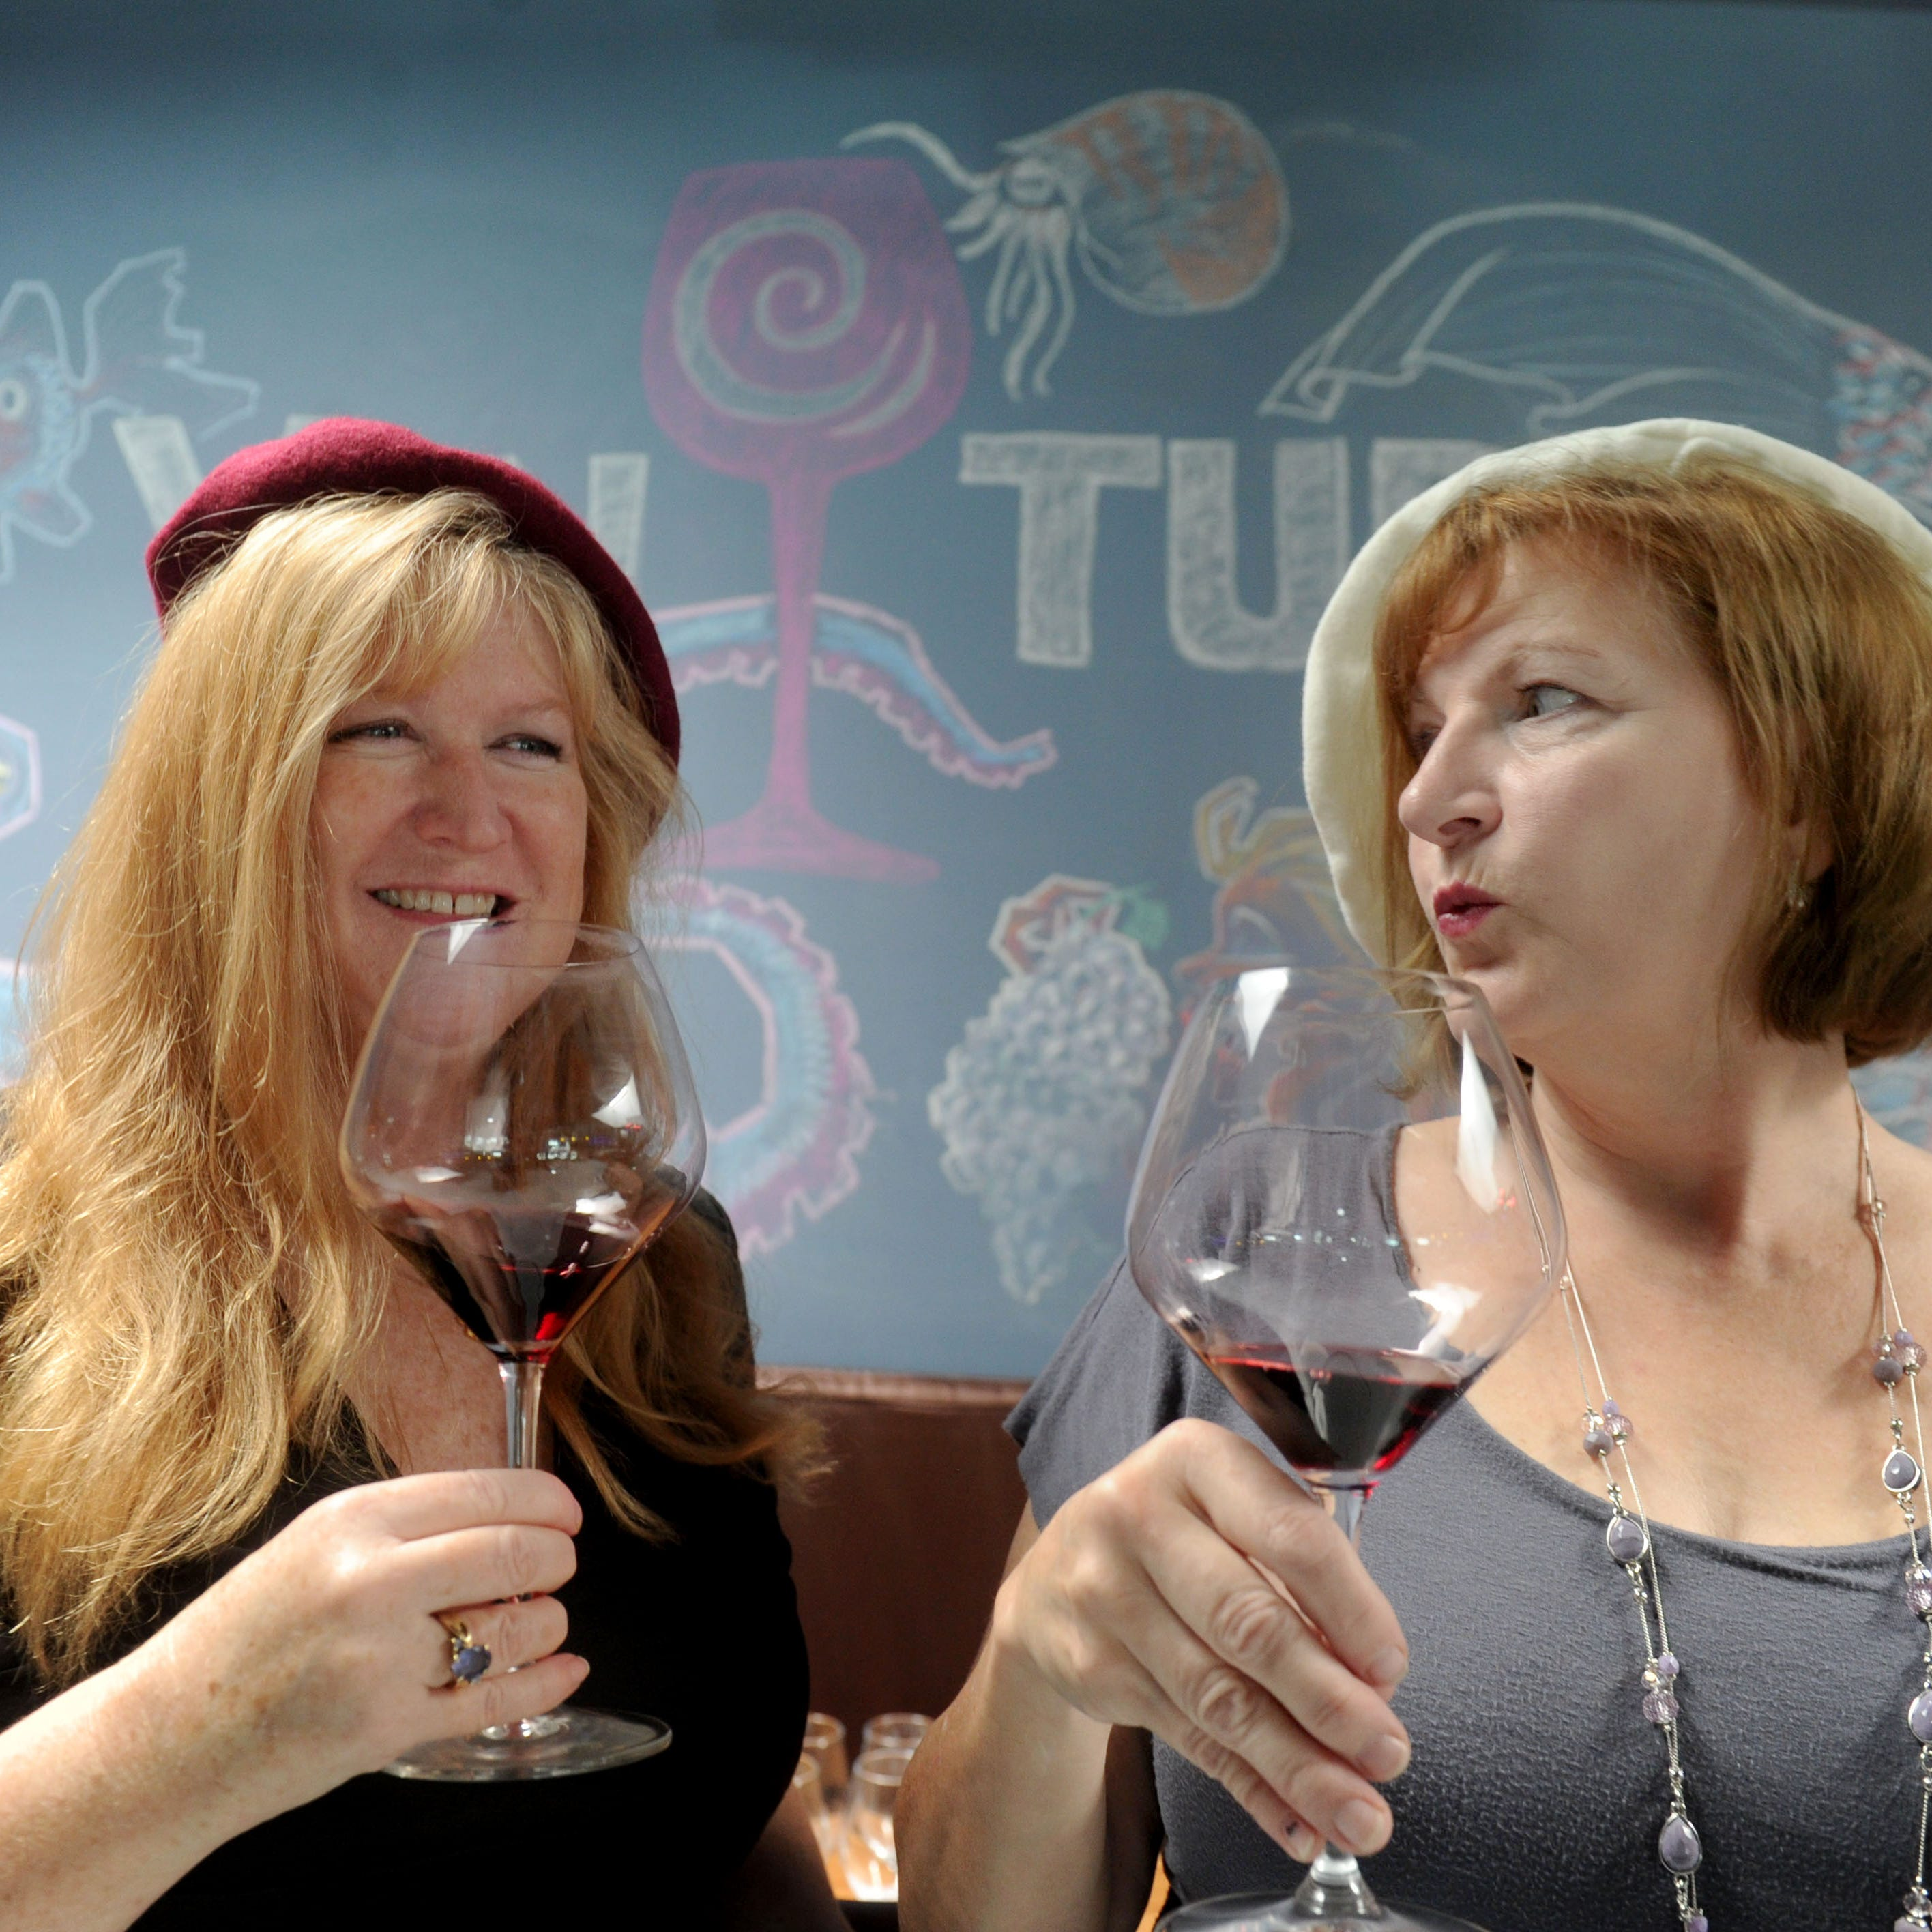 Kristen Shubert, left, a sommelier and owner of VinTura Tasting Room & Wine Rack in downtown Ventura, and Lisa Stoll, a sommelier and owner of the Camarillo-based tour company Explore Wines, will represent the U.S. during the World Wine Tasting Competition from Oct. 12-13 in France. Shubert previously competed as a member of Team USA in 2016.